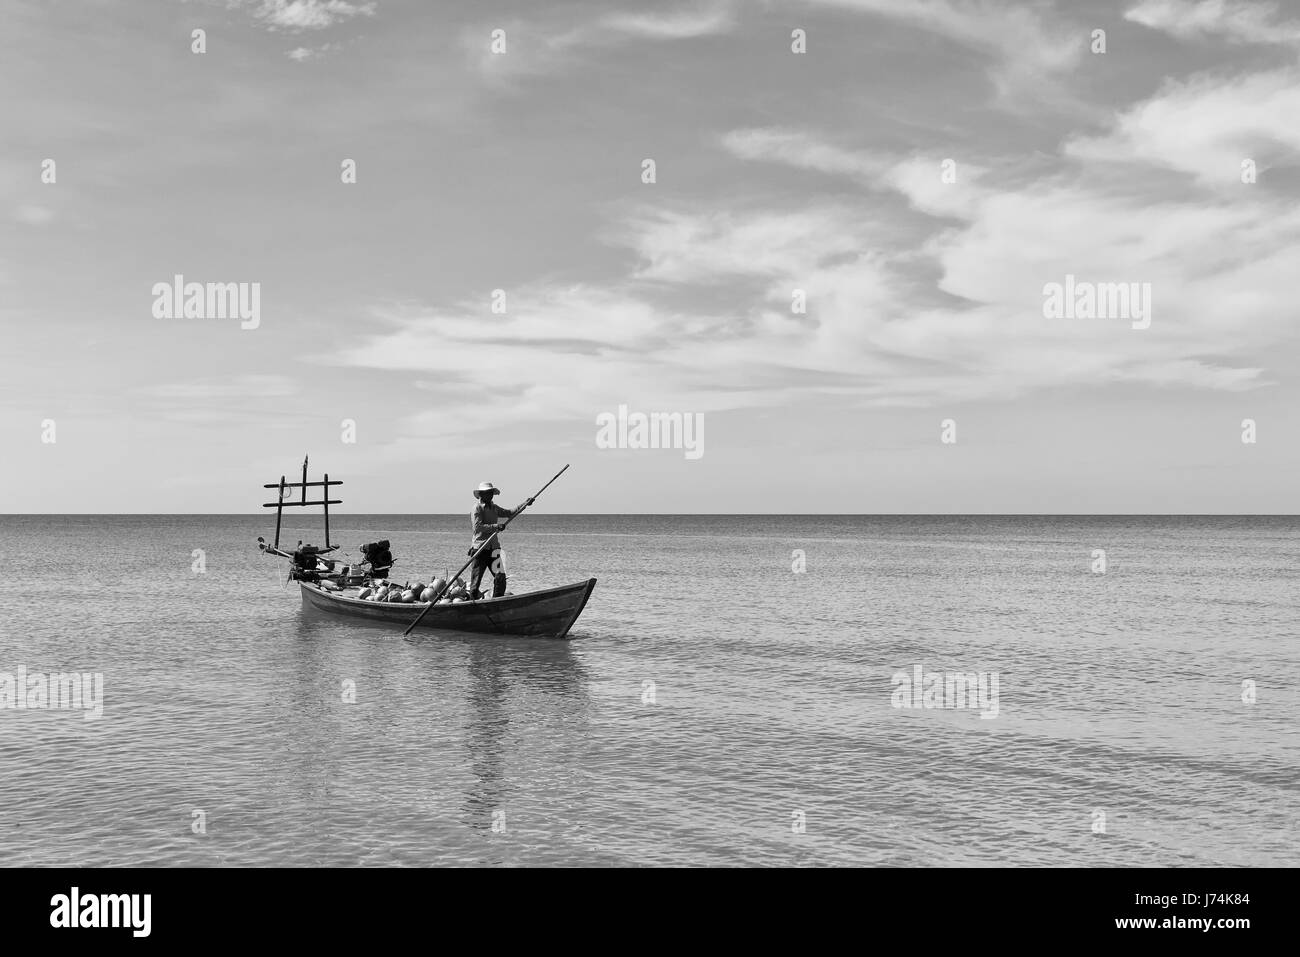 Boat with coconuts - Stock Image